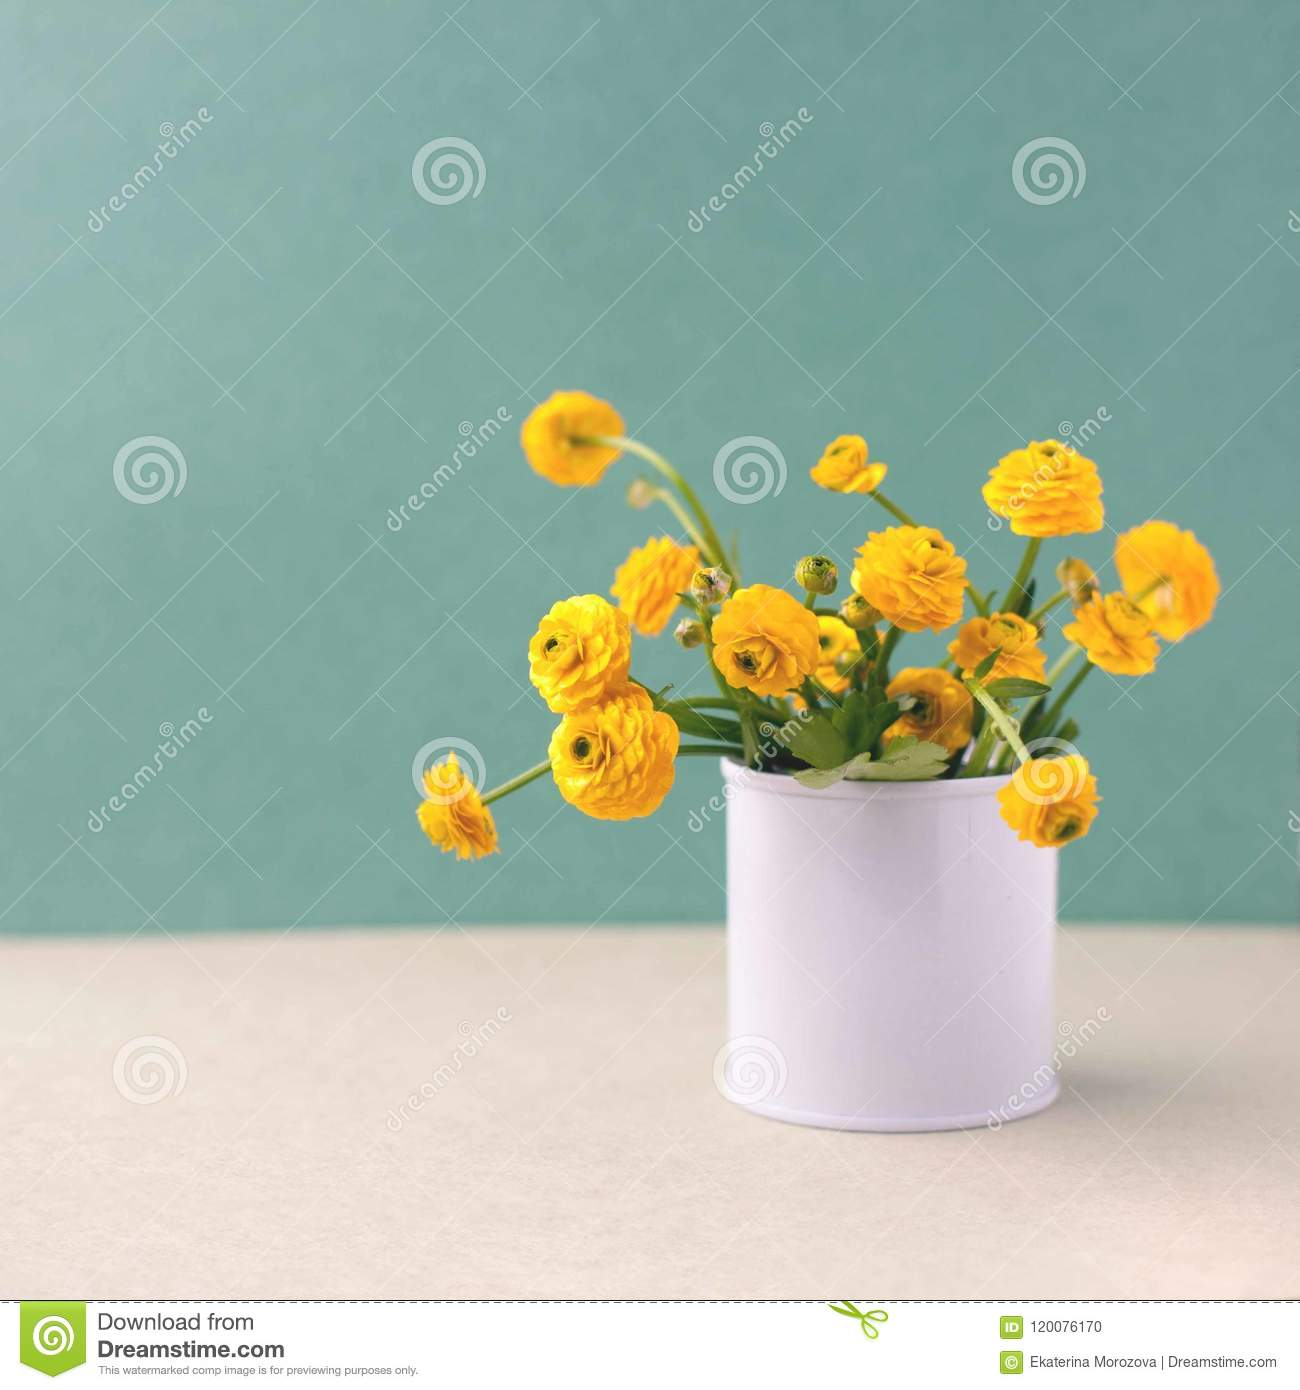 Bouquet of yellow flowers in a bank floral decoration spring and bouquet of yellow flowers in a bank floral decoration spring and summer time minimal mightylinksfo